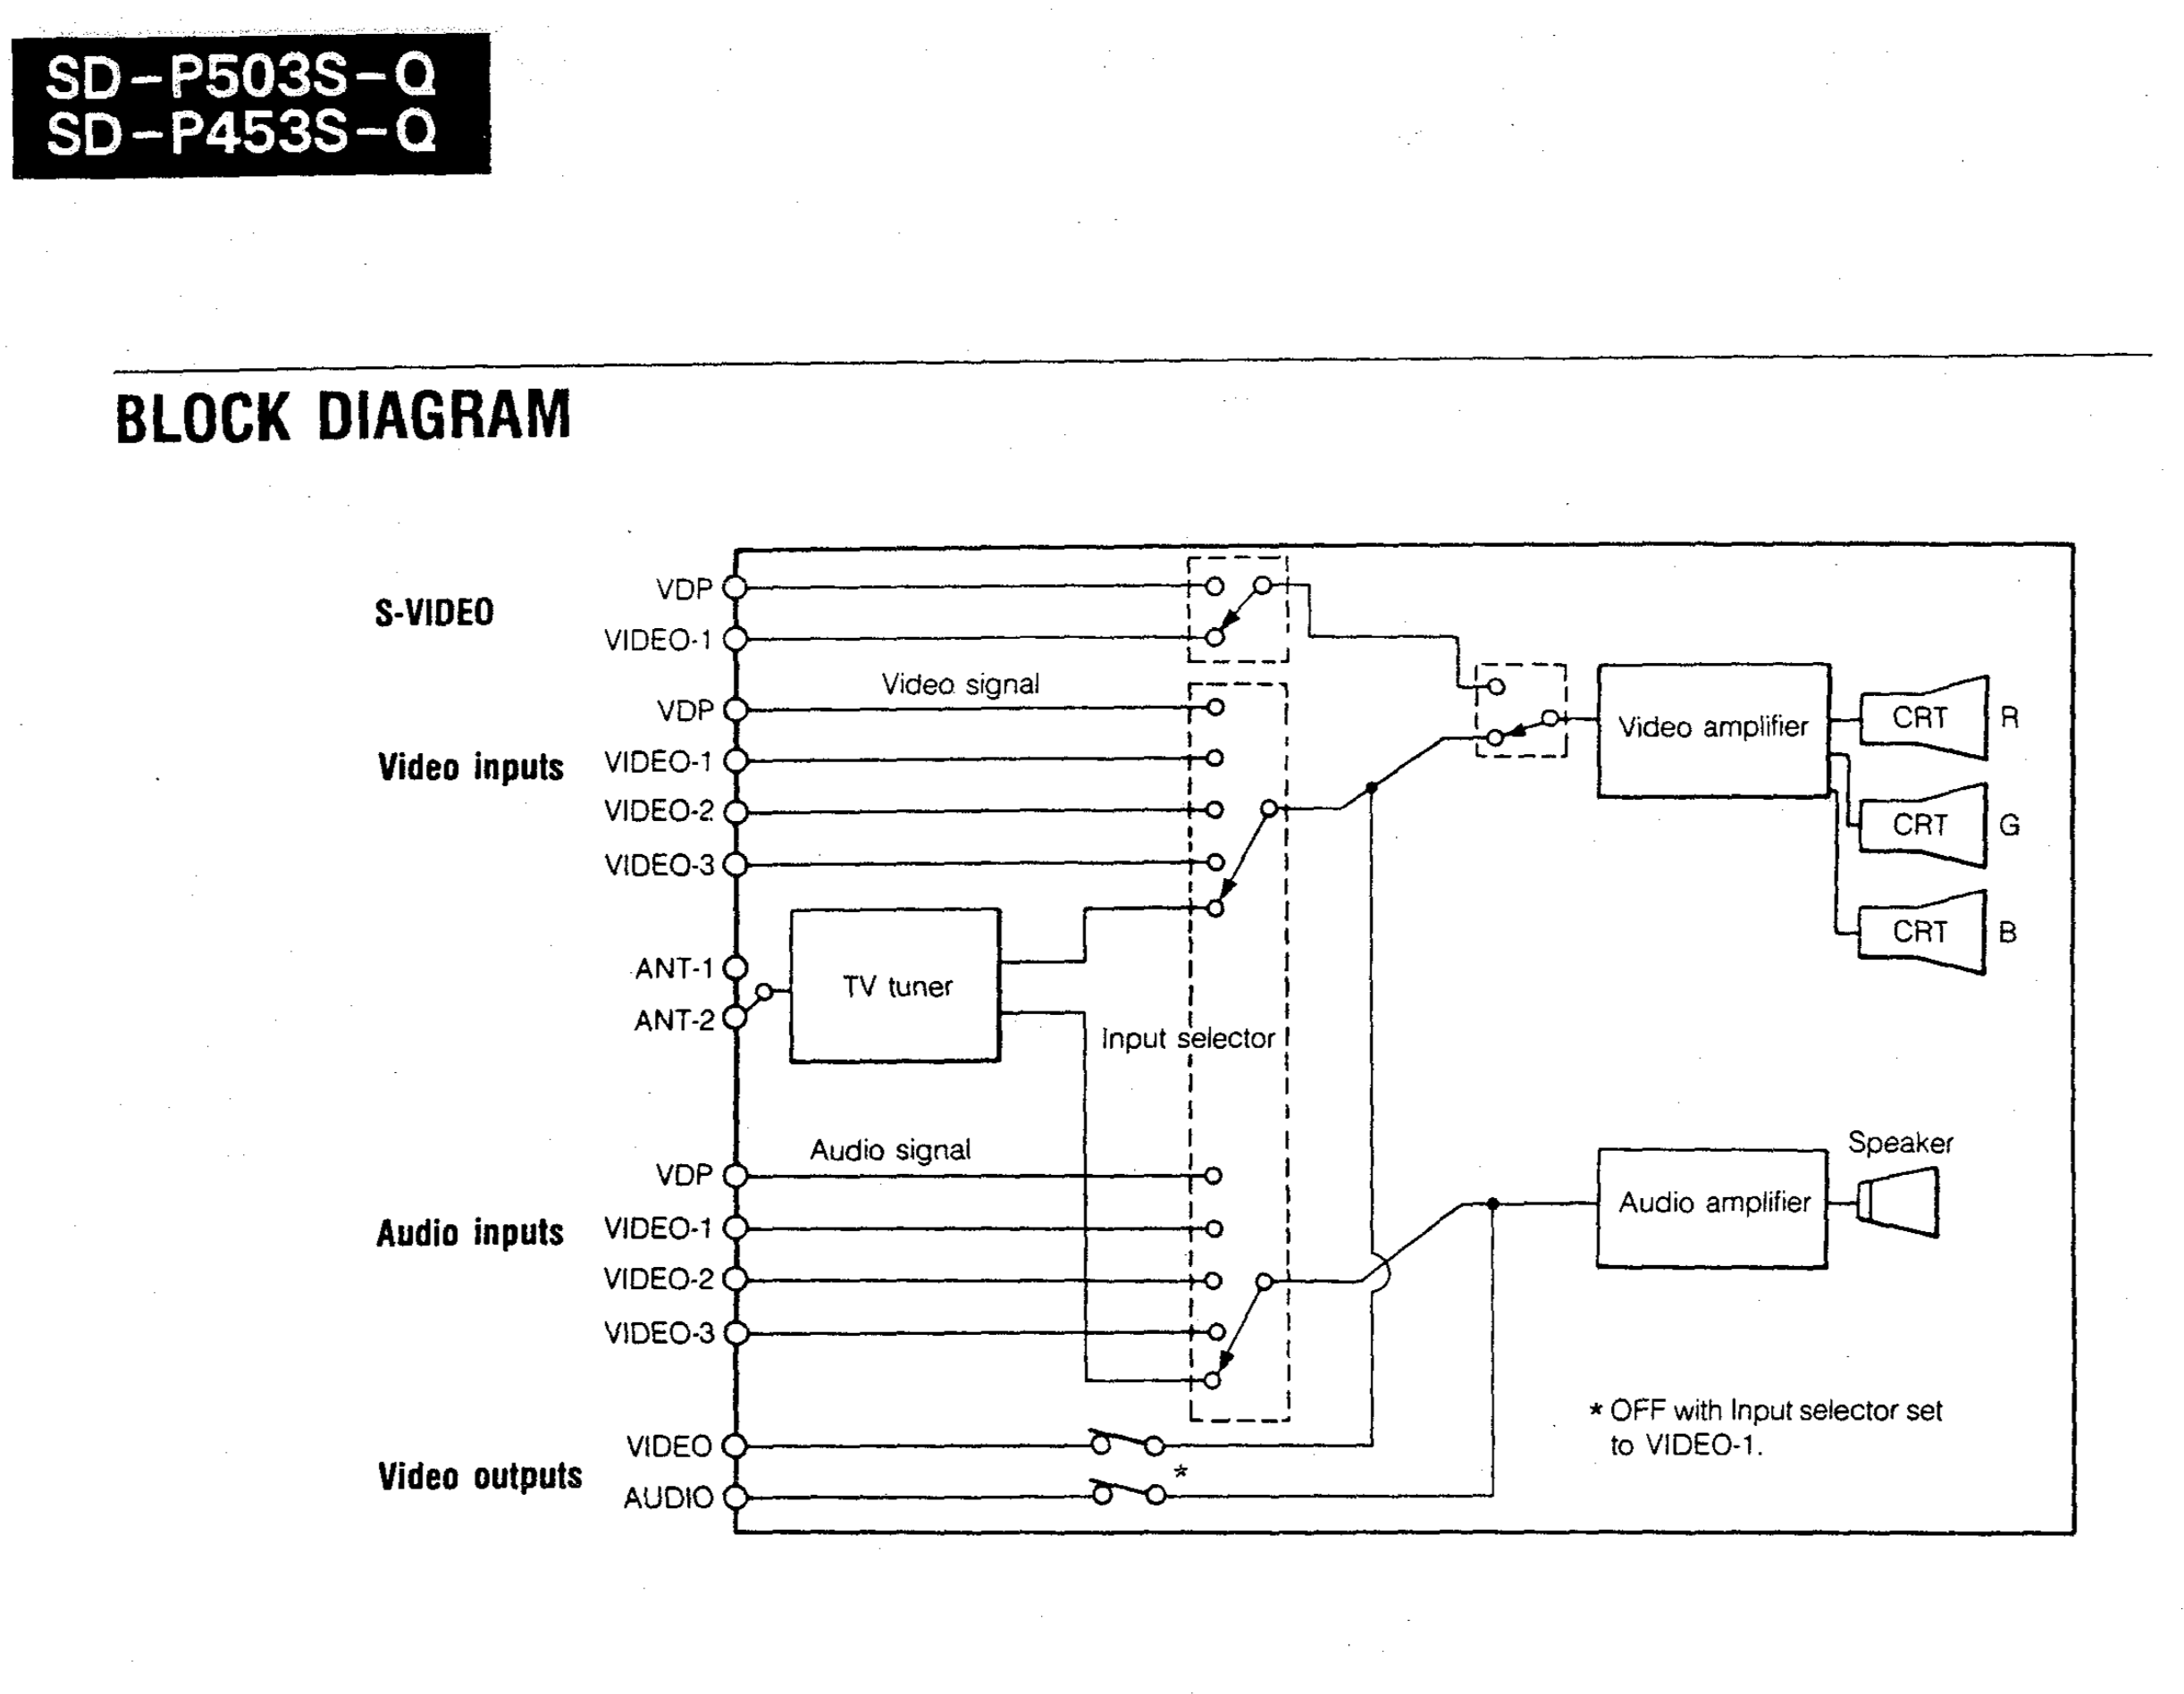 SD-P453S-Q block diagram